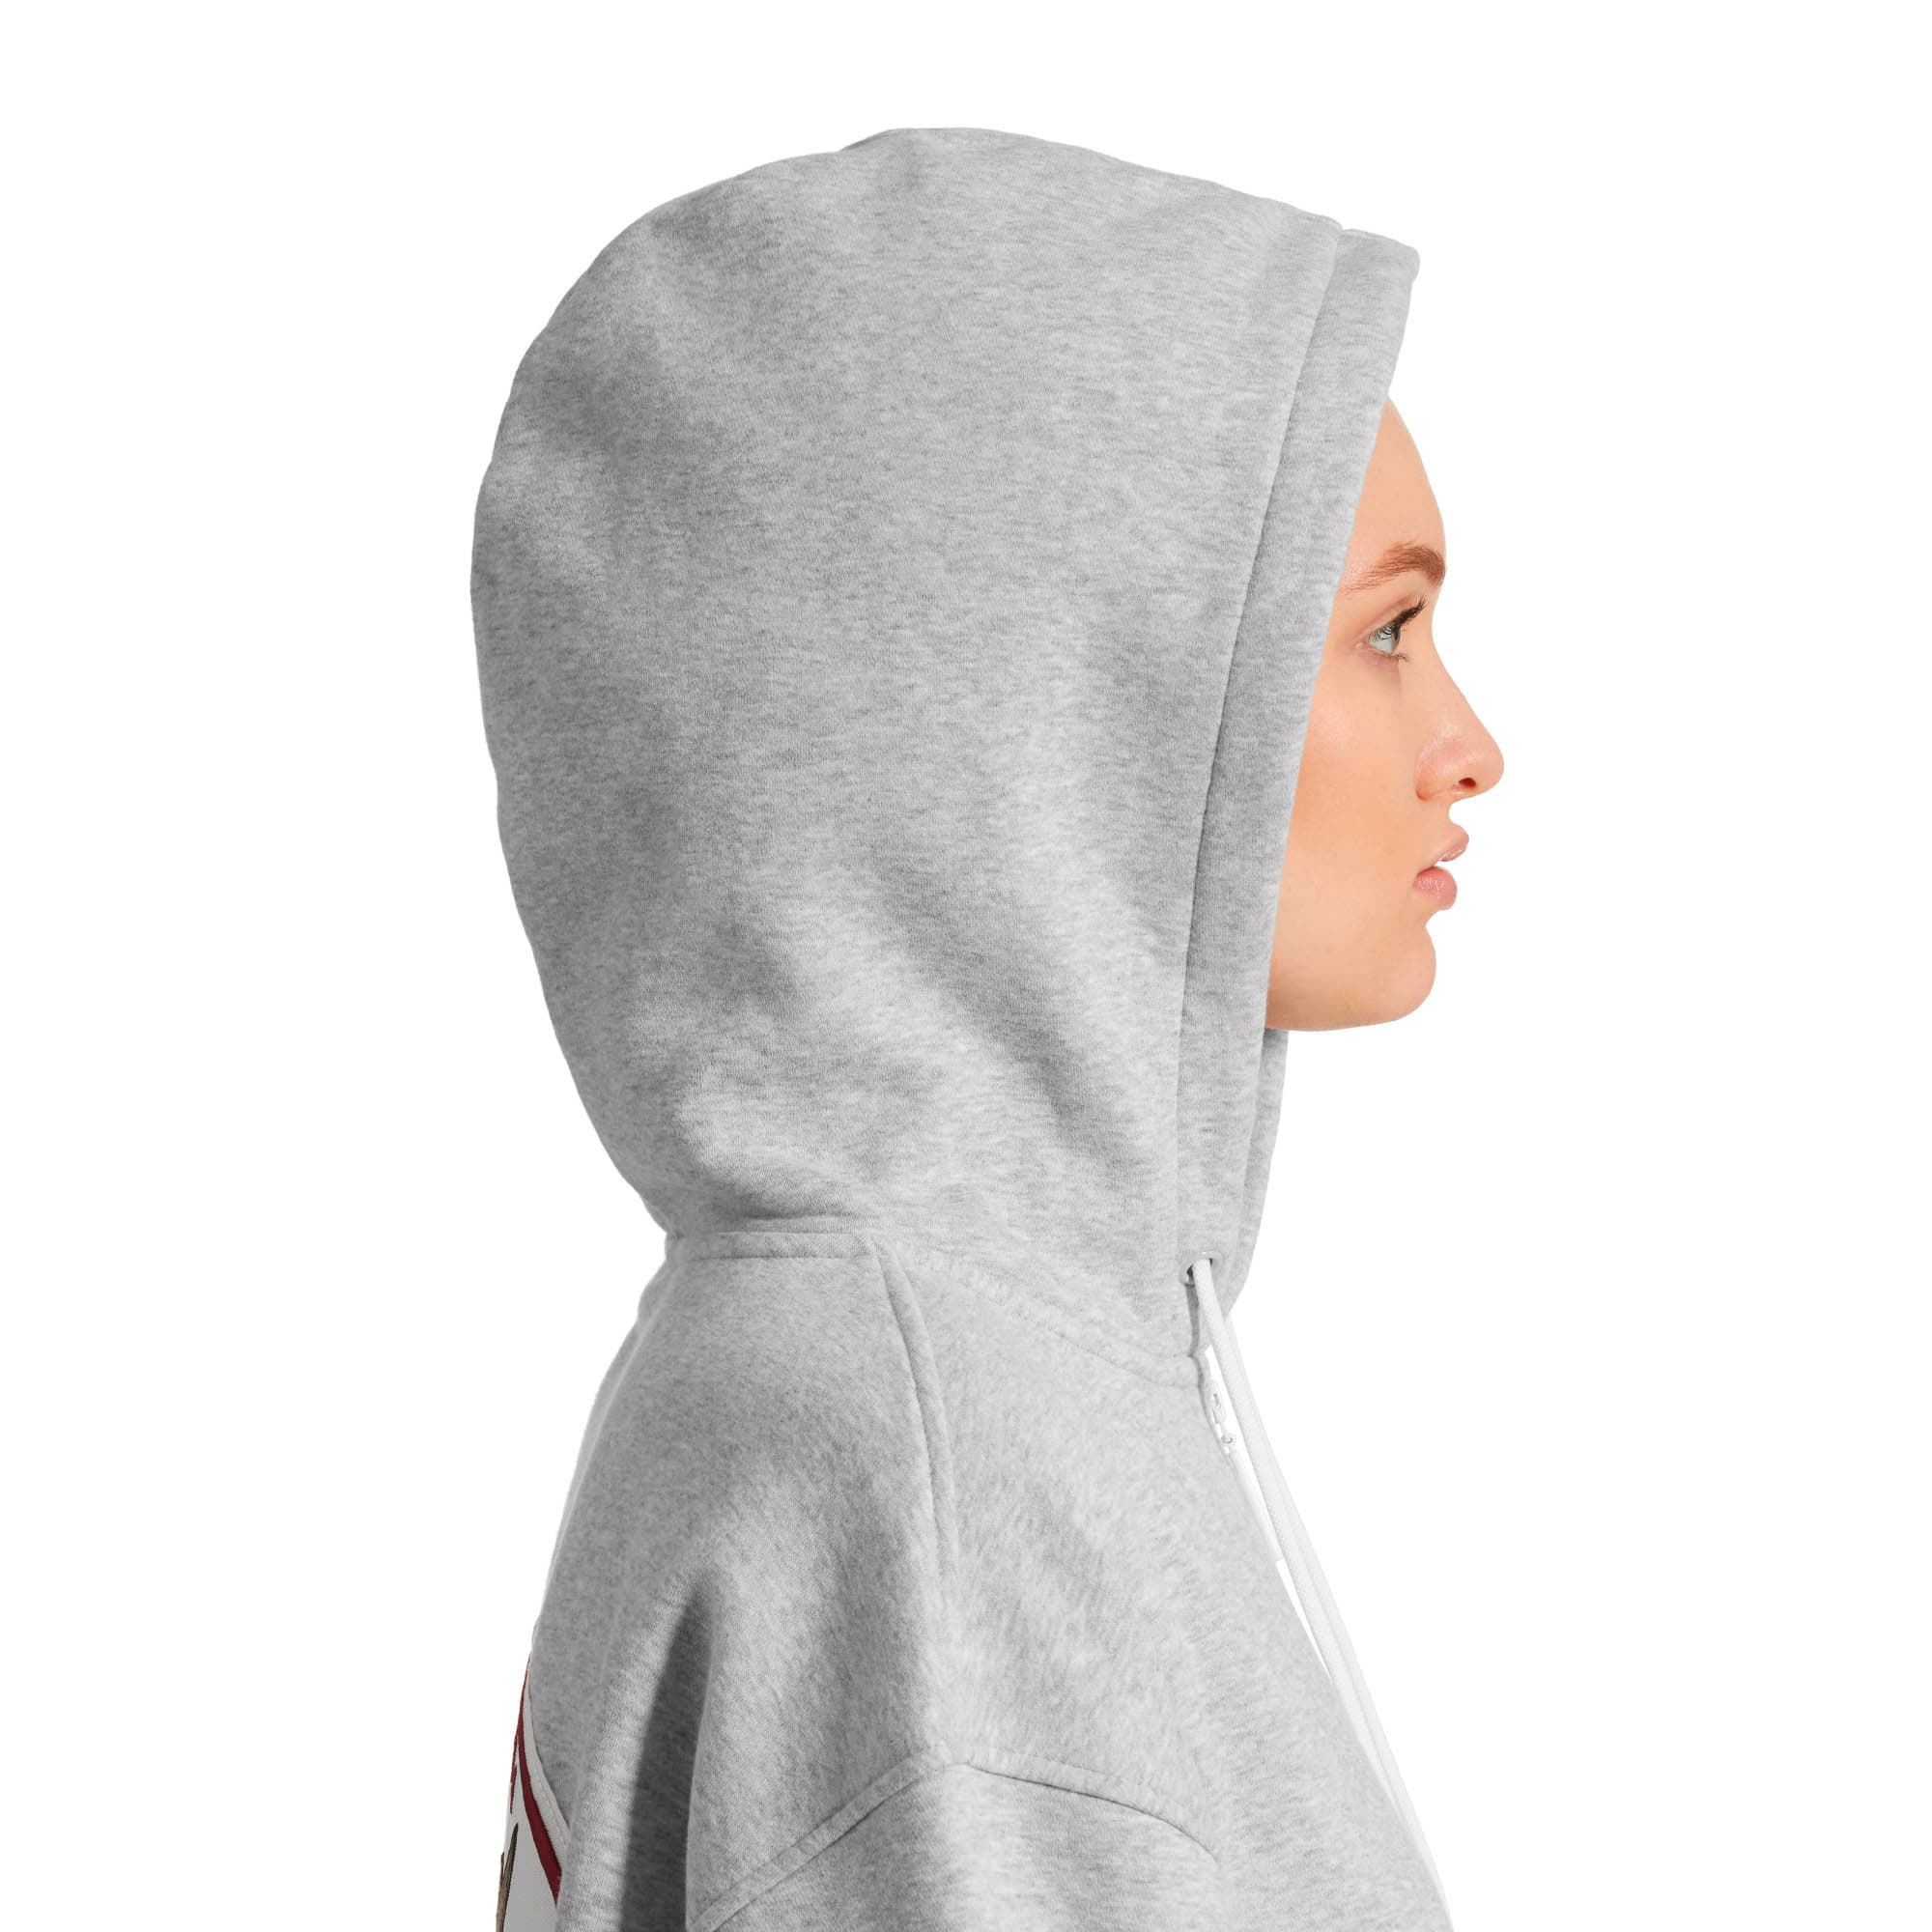 Thumbnail 9 of SG x PUMA Full Zip Hoodie, Light Gray Heather, medium